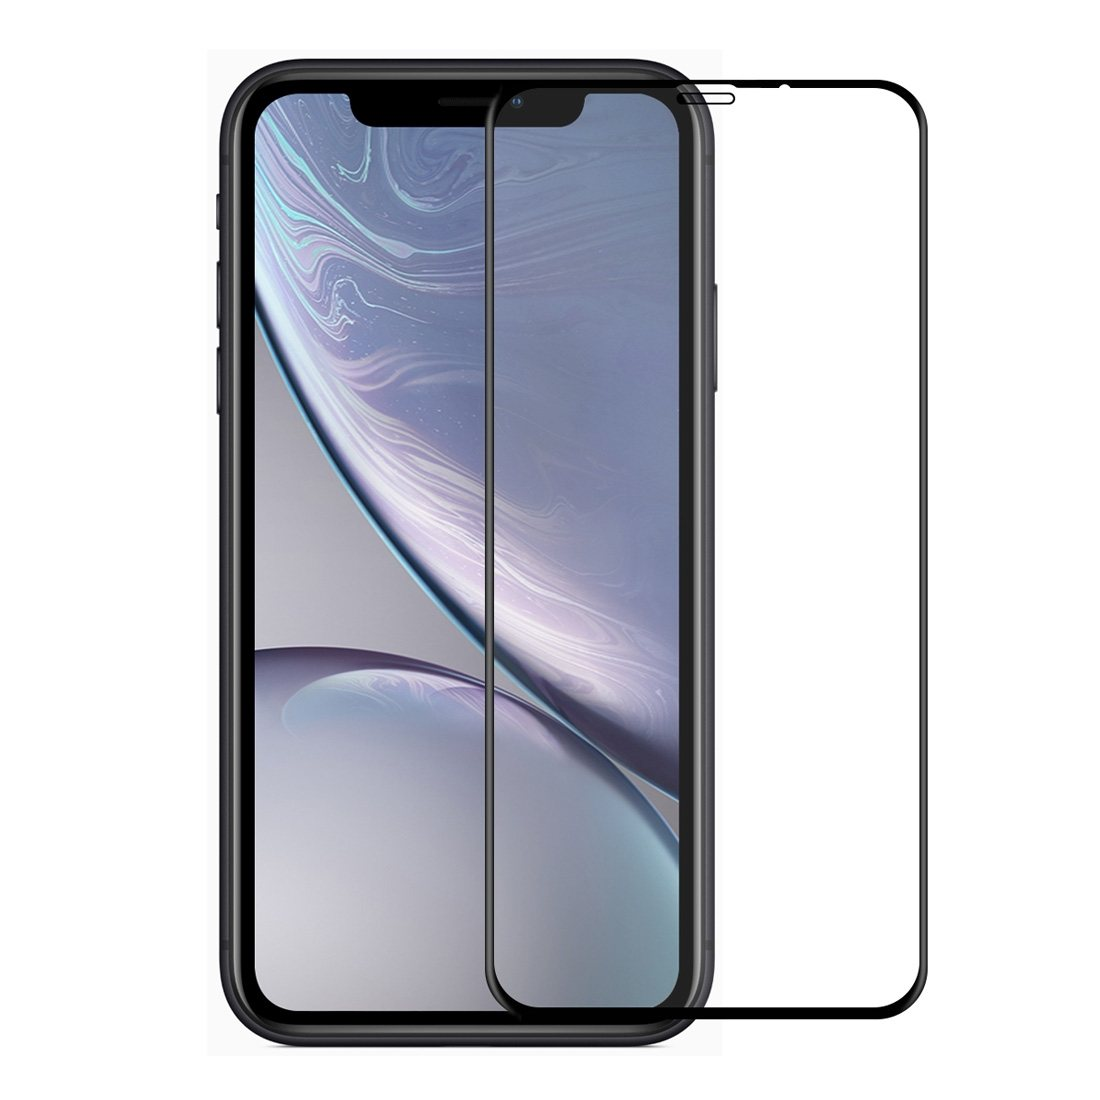 Enkay Displayskydd iPhone XR - Av härdat glas 9H 6D Curved full screen Svart